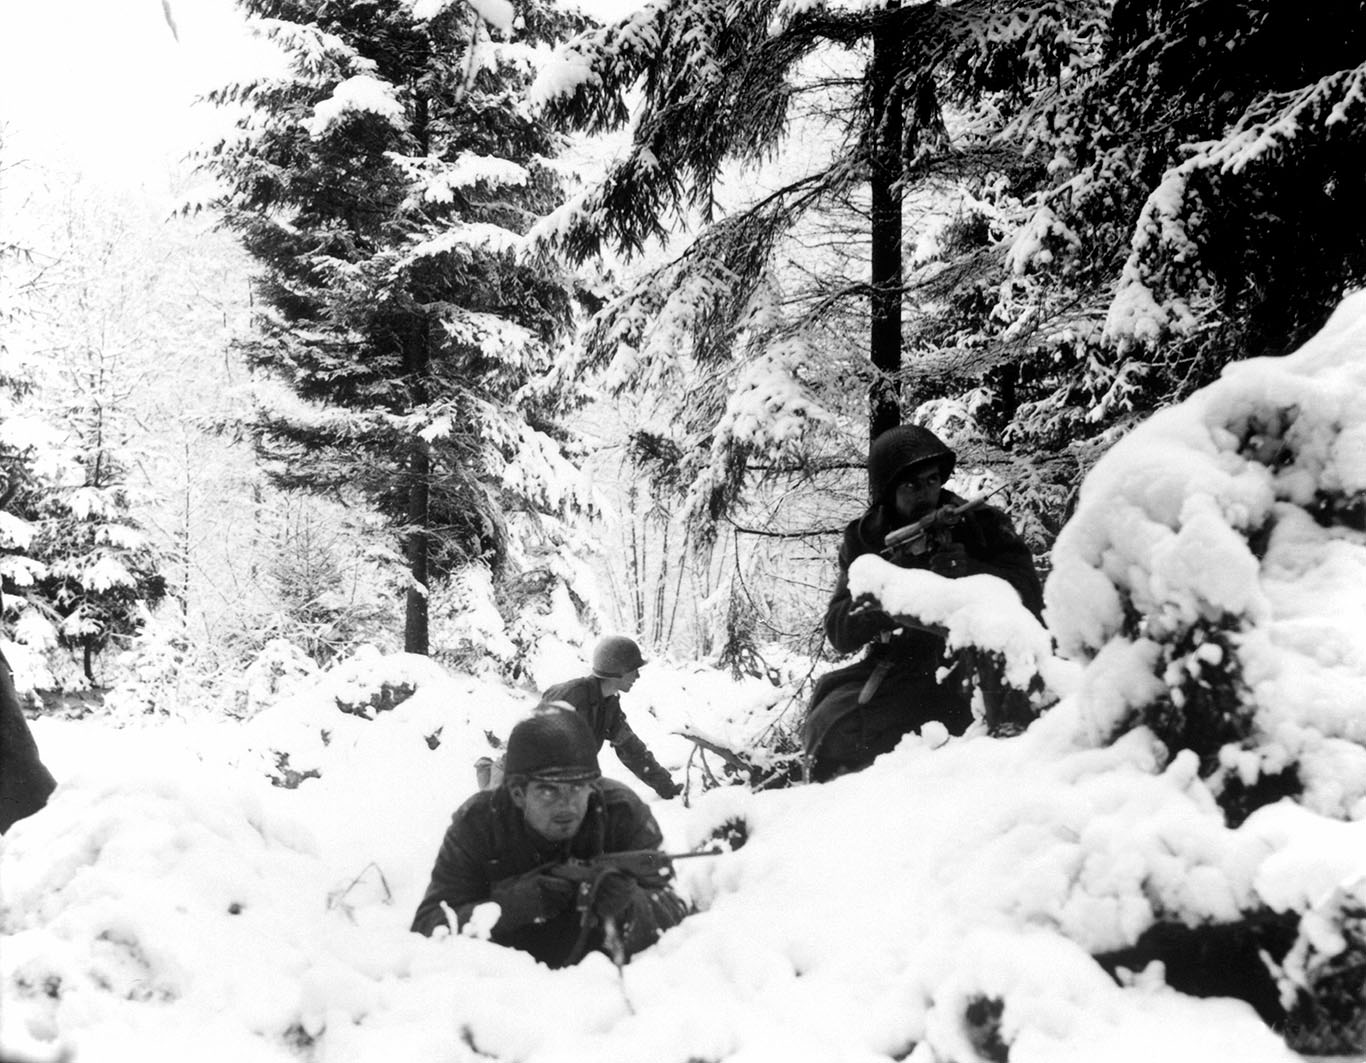 soldiers hiding in snowy bushes